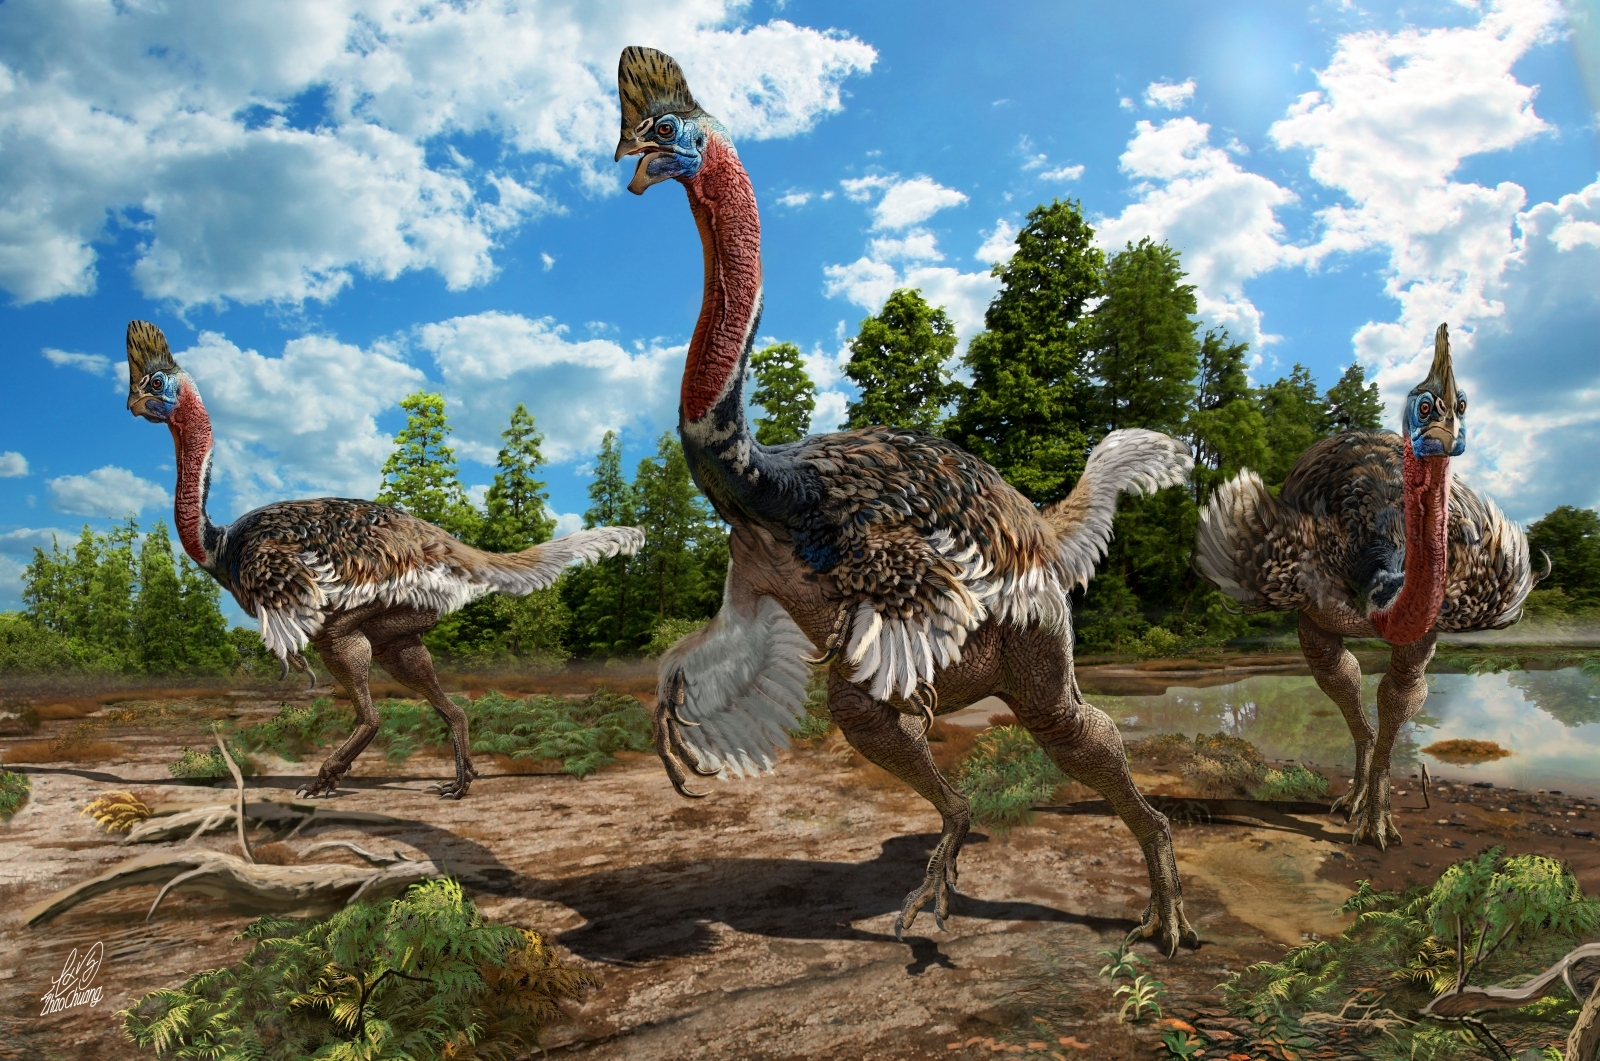 Corythoraptor jacobsi